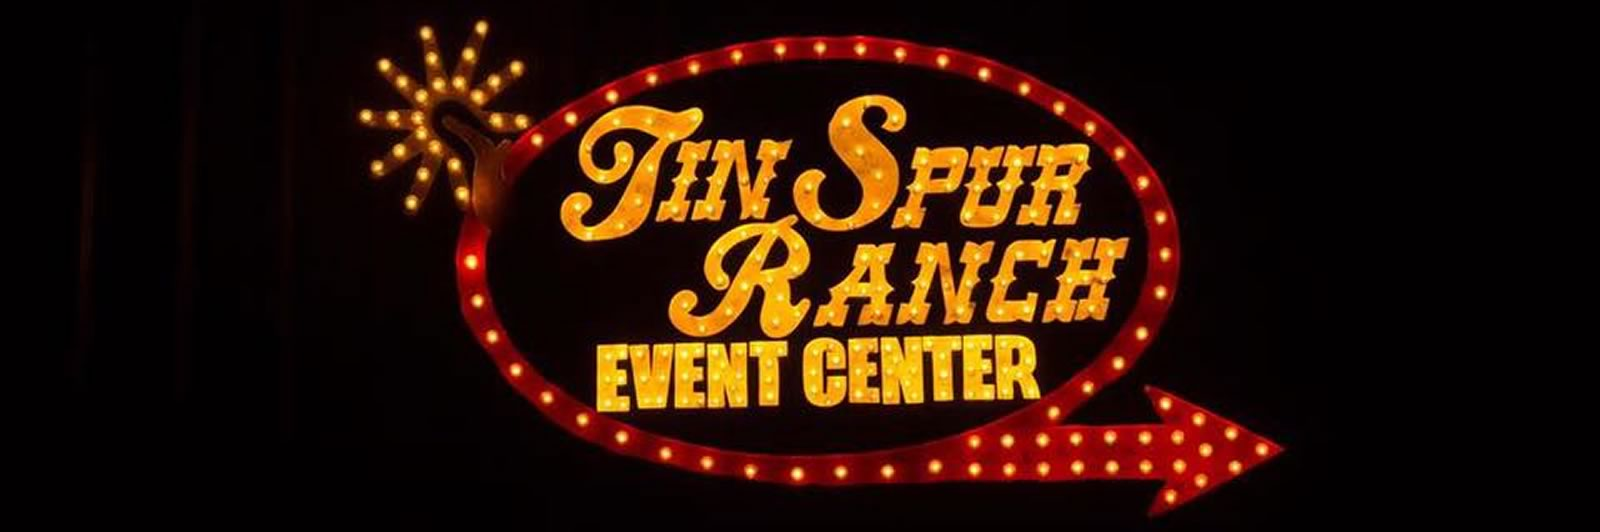 Tin Spur Event Center Sign